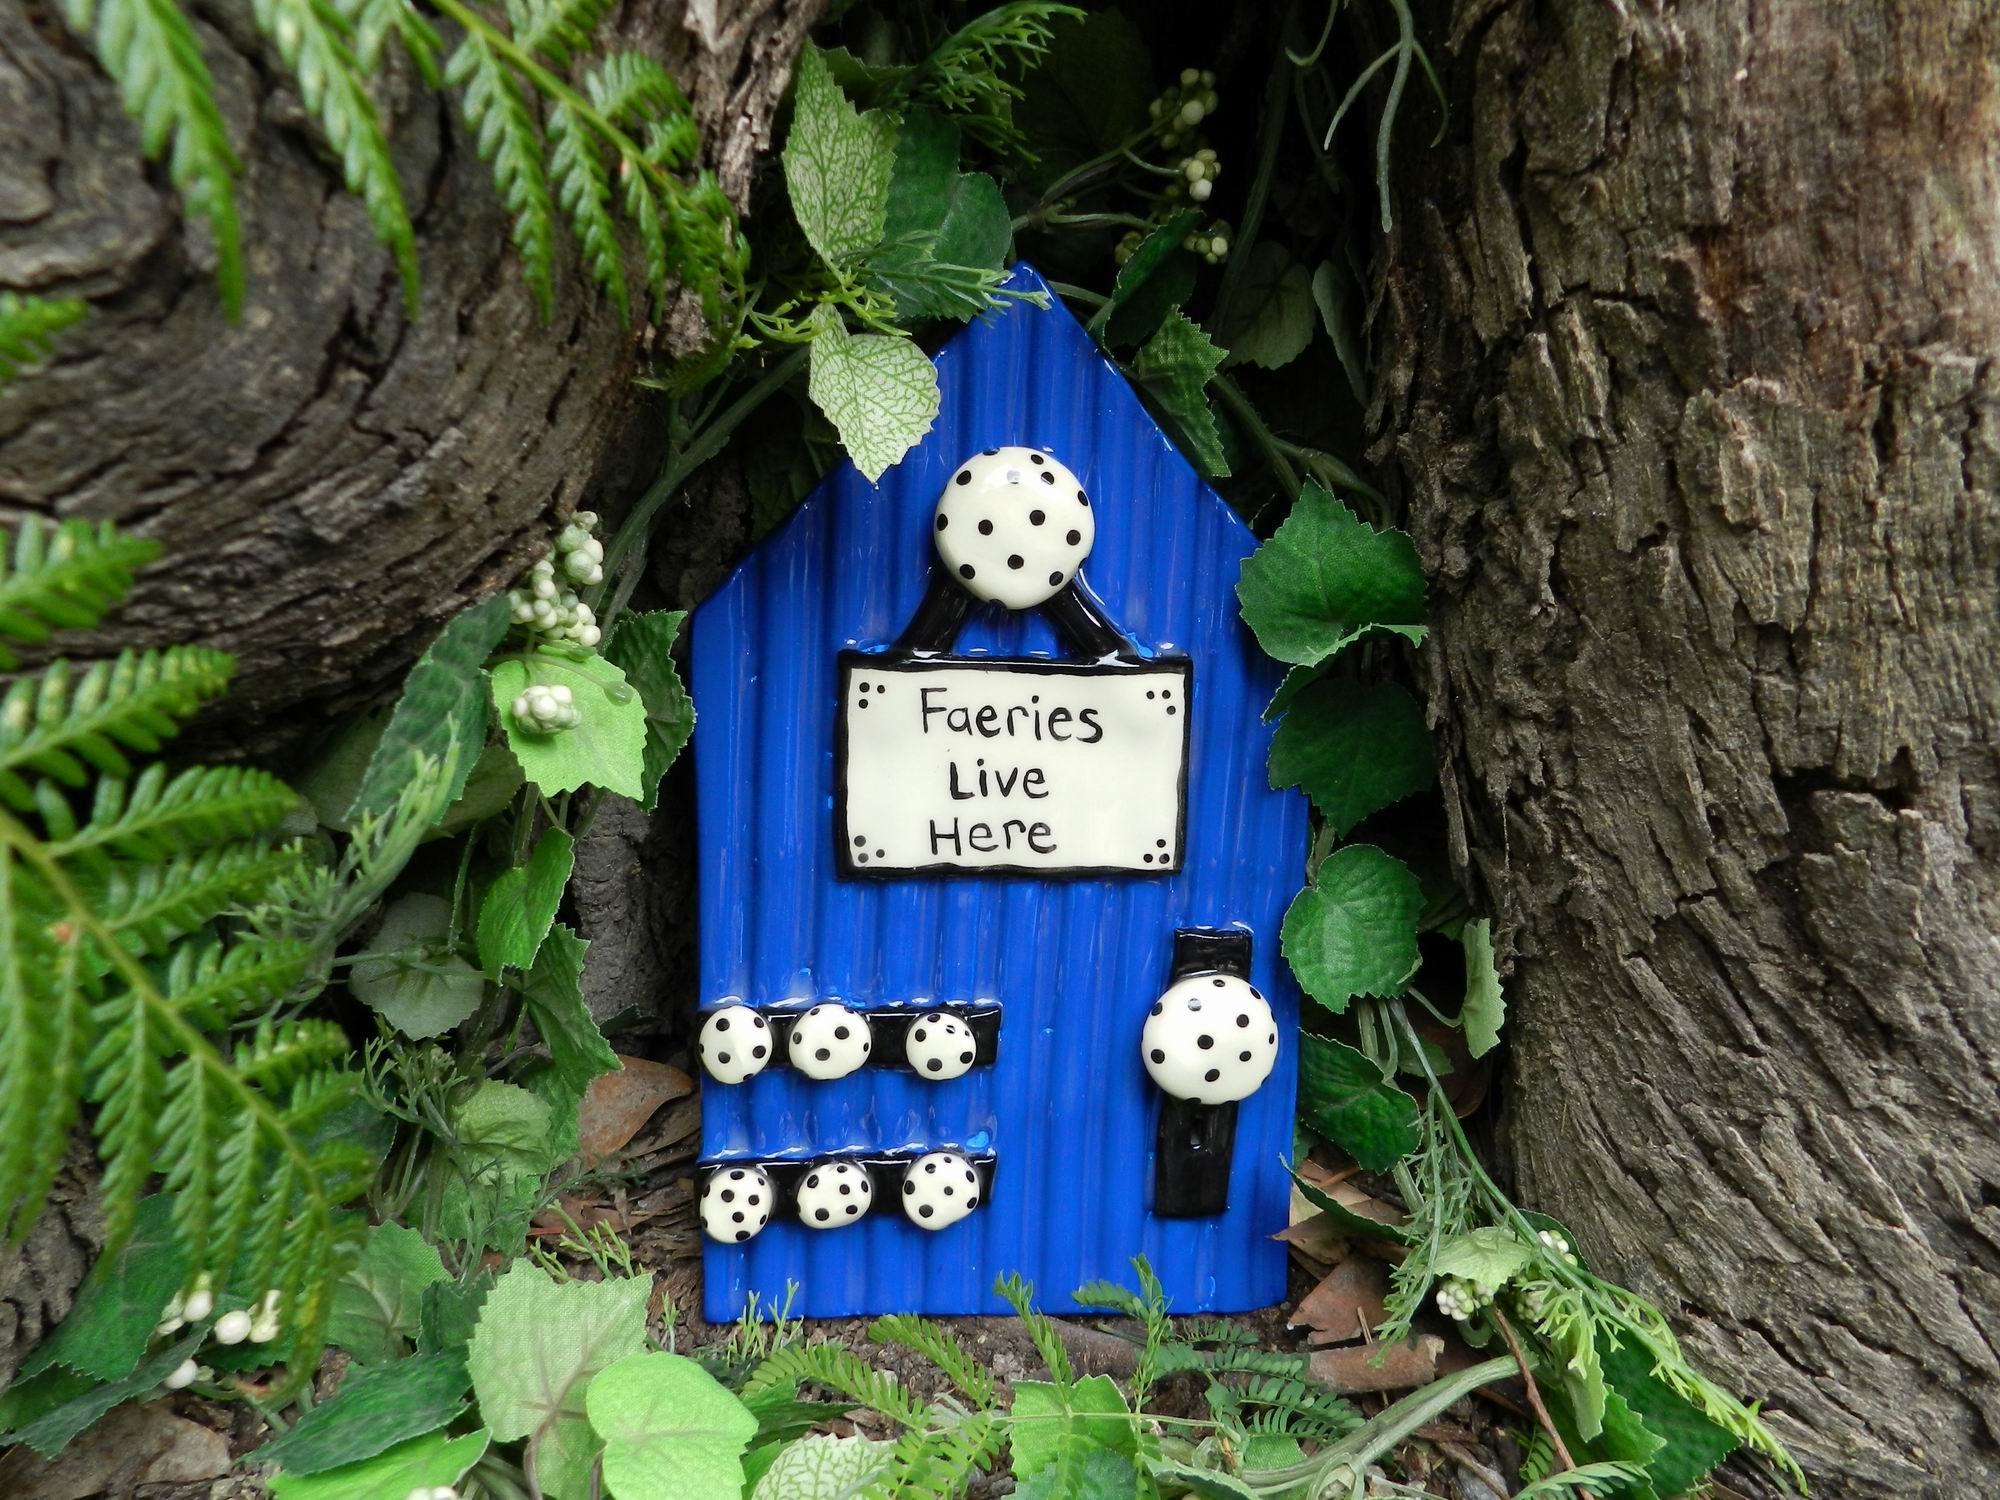 Blue Faerie Door Faeries are Real by Fiorenchantment. Find me on Facebook! & Blue Faerie Door Faeries are Real by Fiorenchantment. Find me on ...